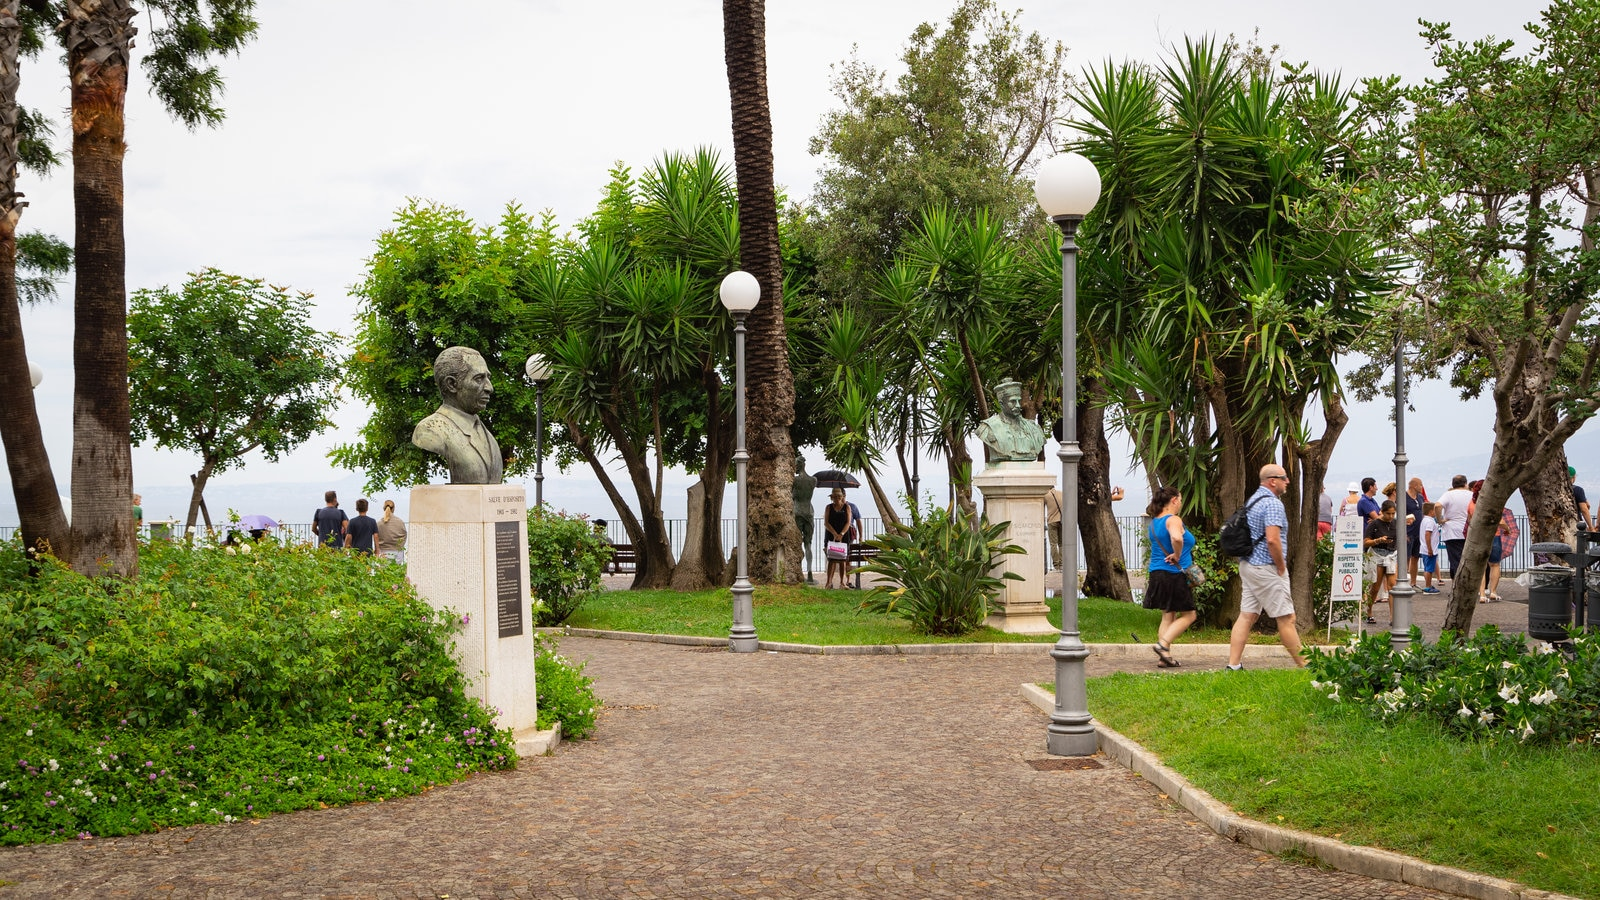 Villa Comunale Park featuring a park as well as a couple